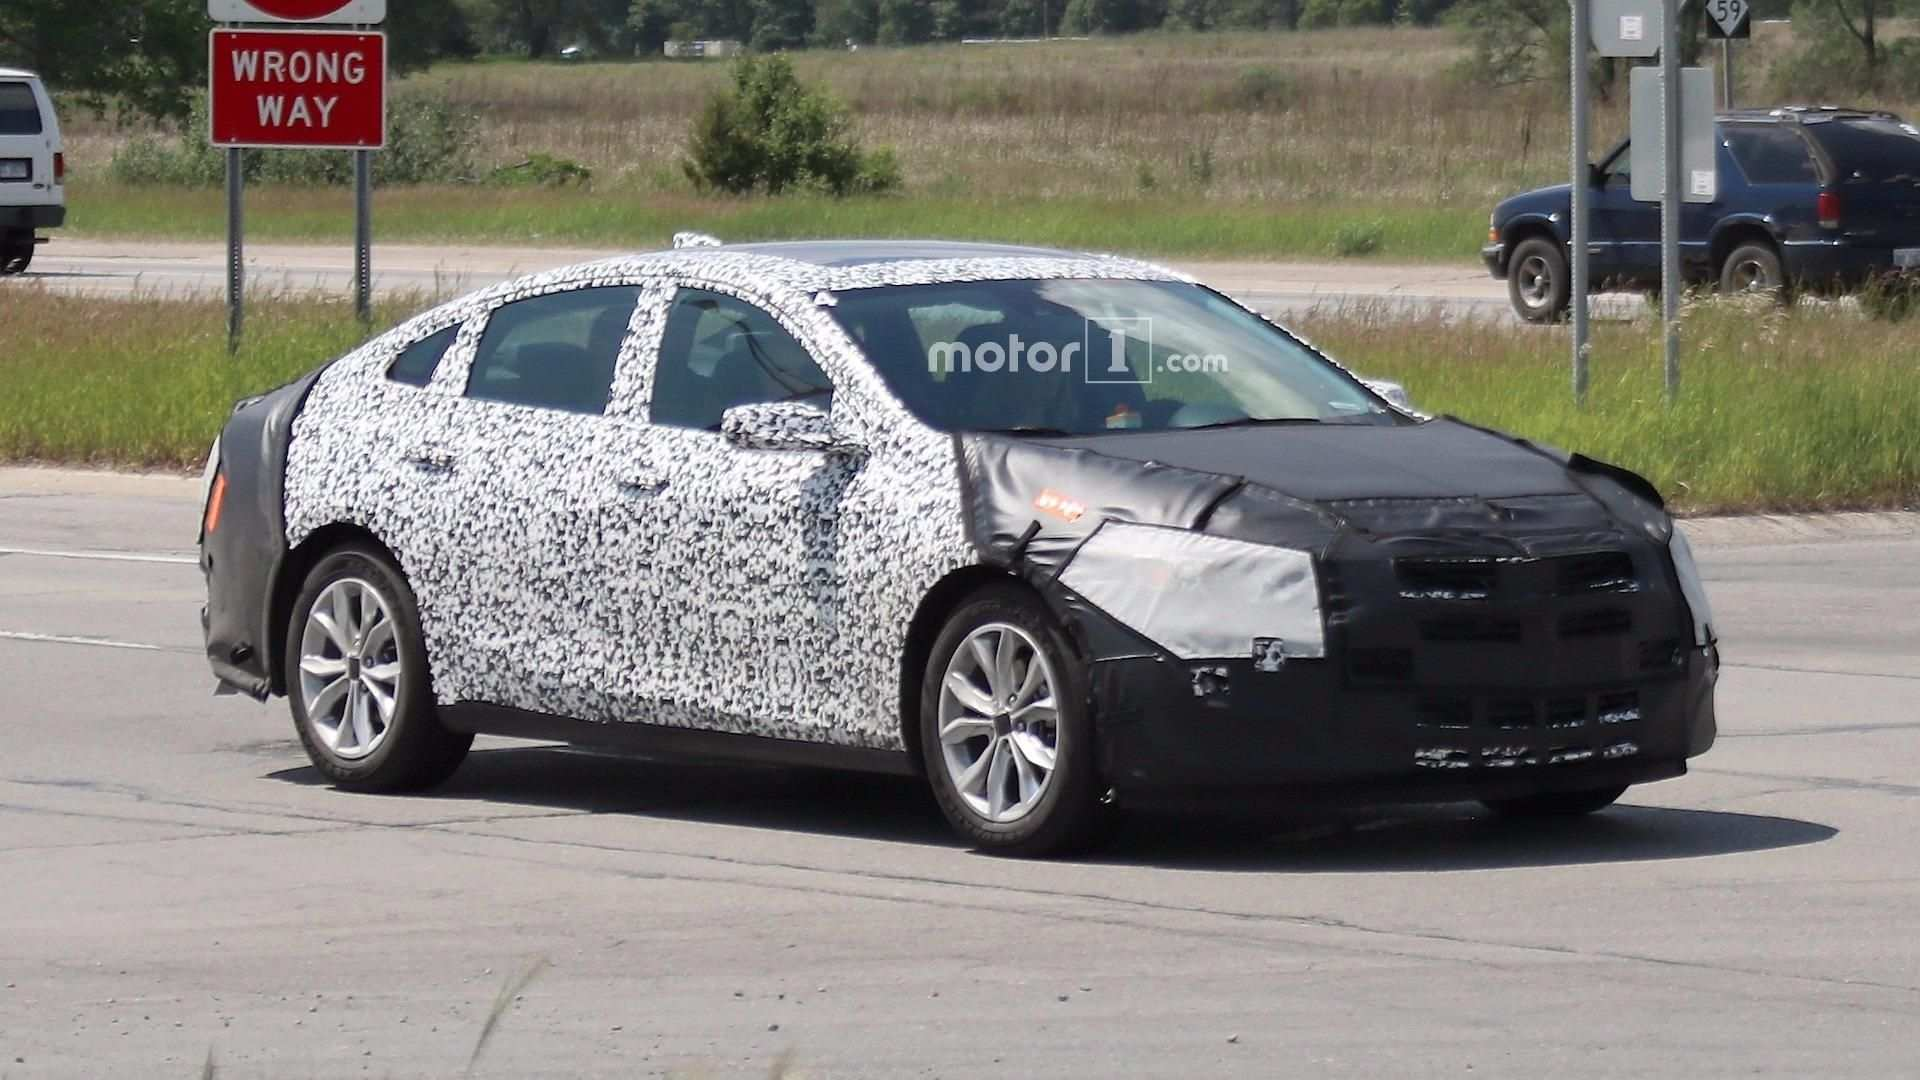 69 Great New Chevrolet Malibu 2019 Release Date Exterior And Interior Review Price with New Chevrolet Malibu 2019 Release Date Exterior And Interior Review